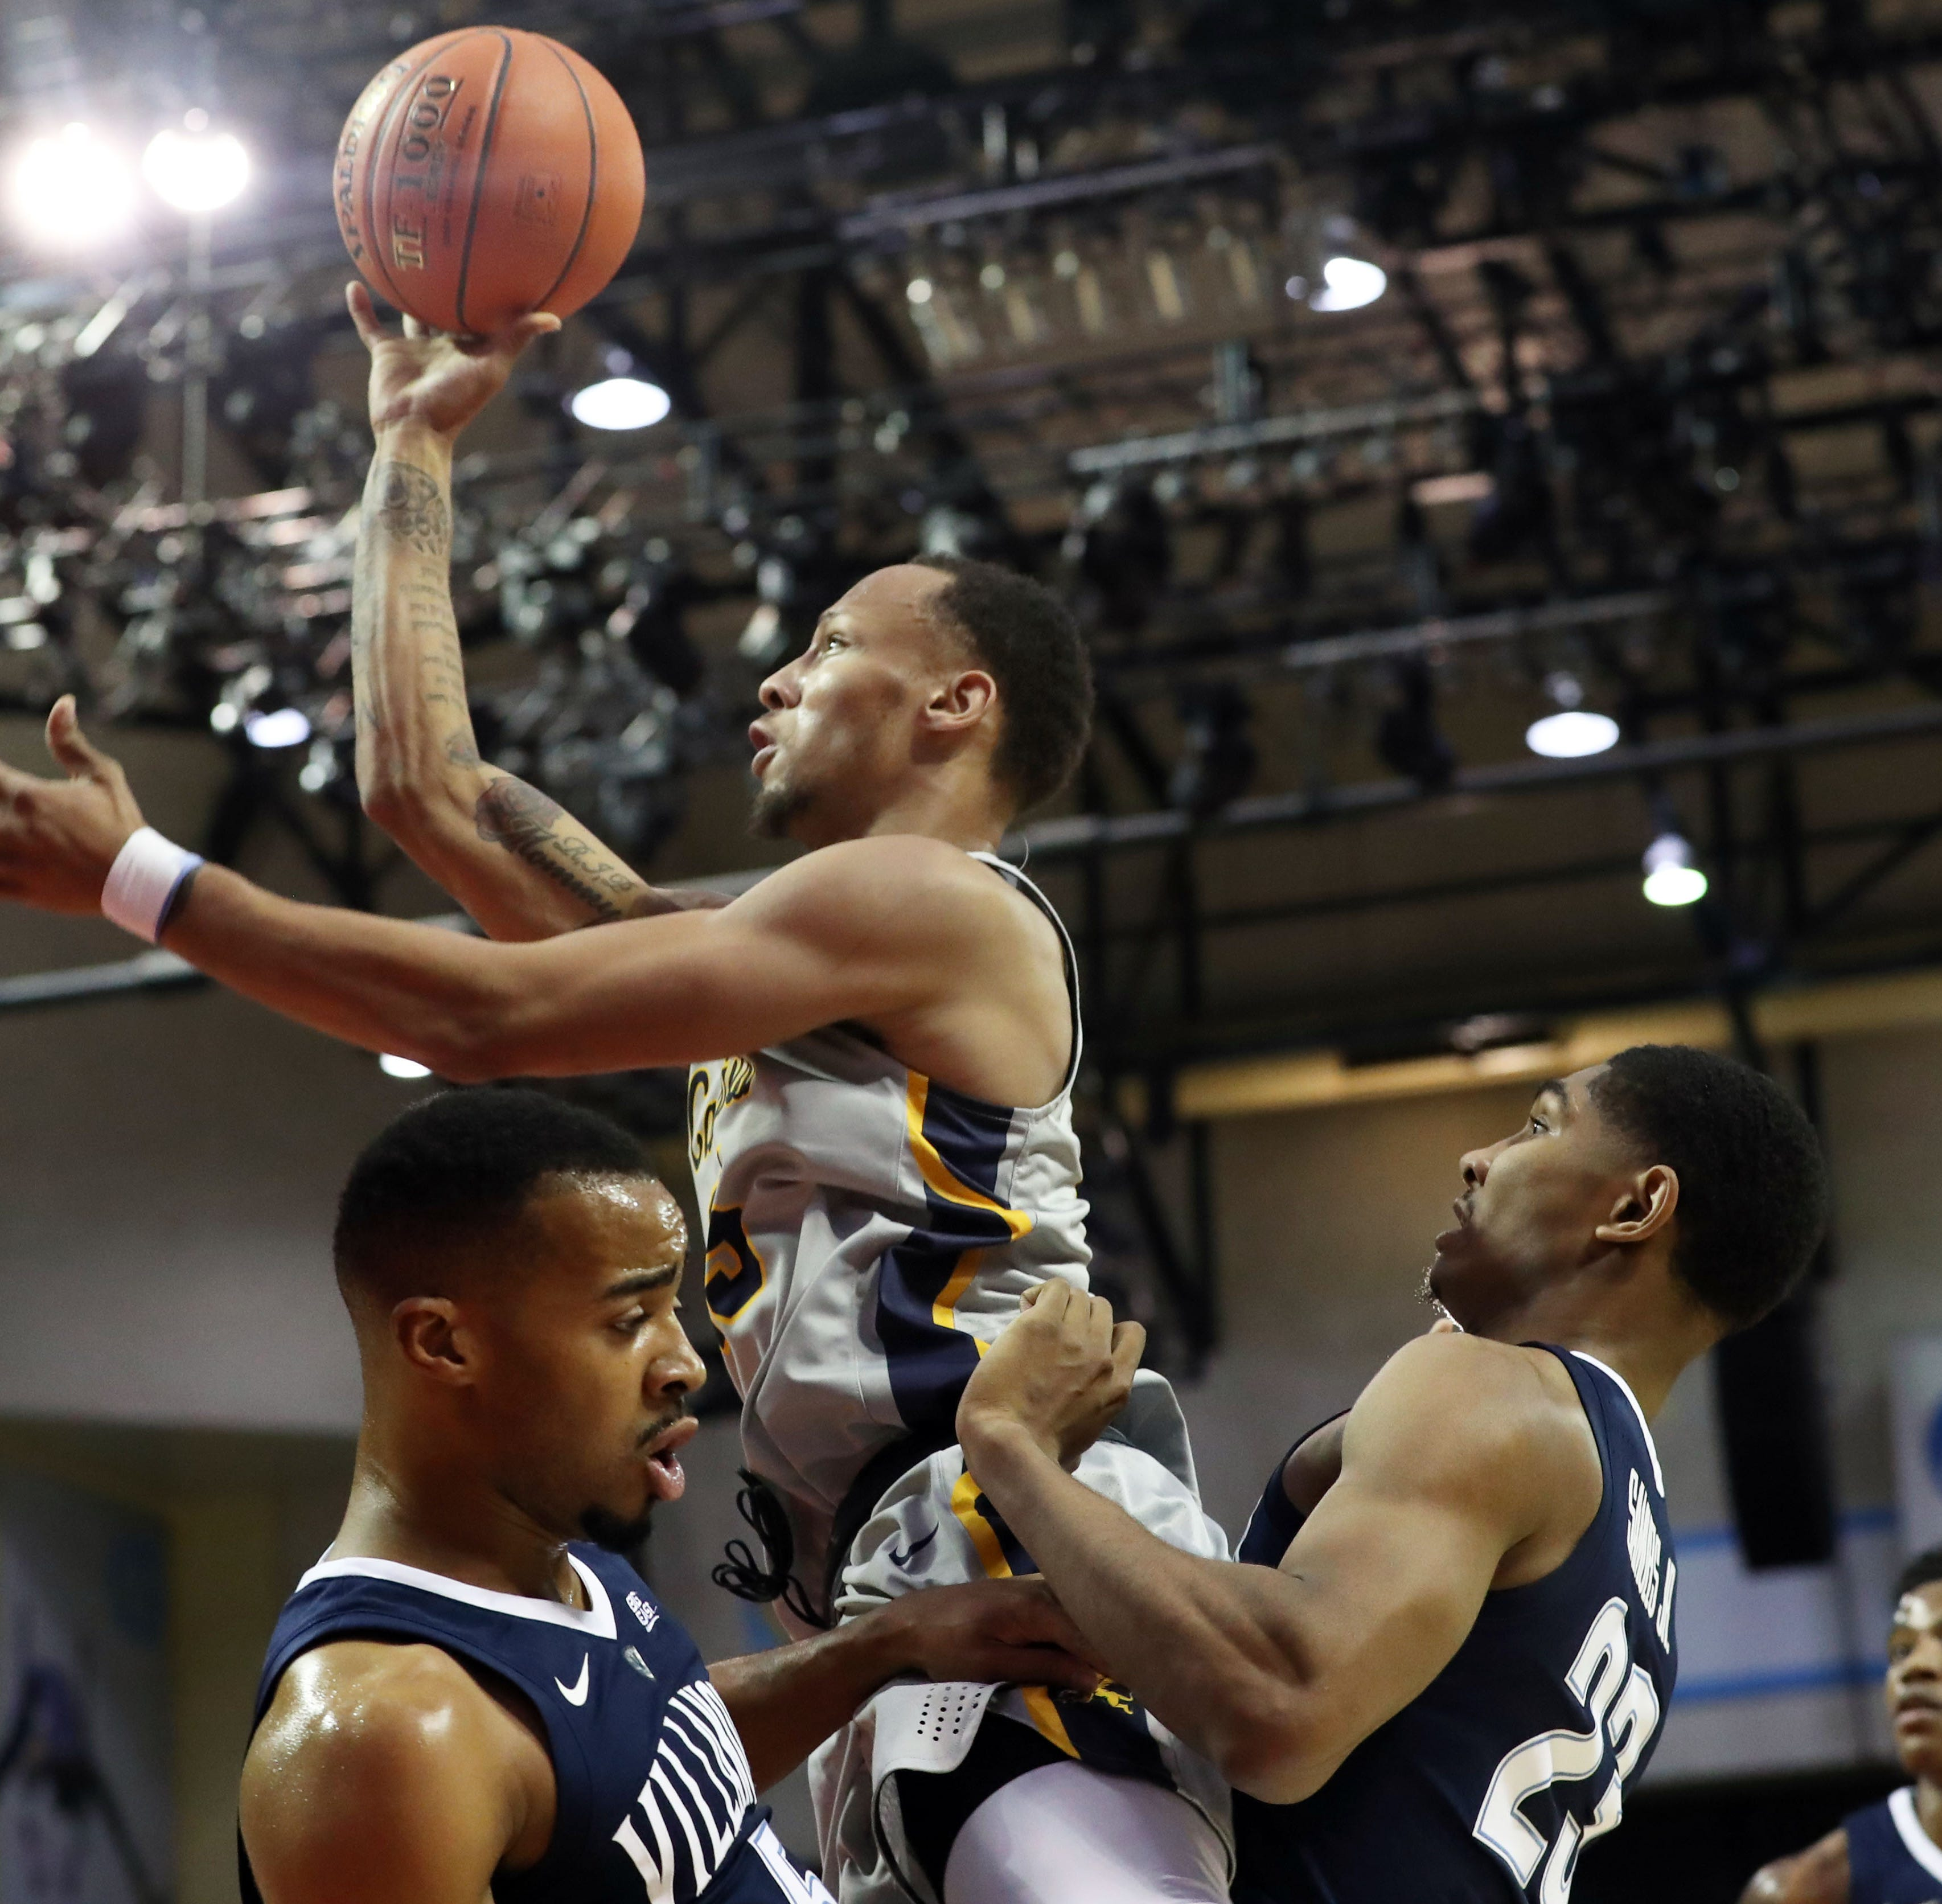 Seton Hall basketball adds Canisius transfer guard Takal Molson